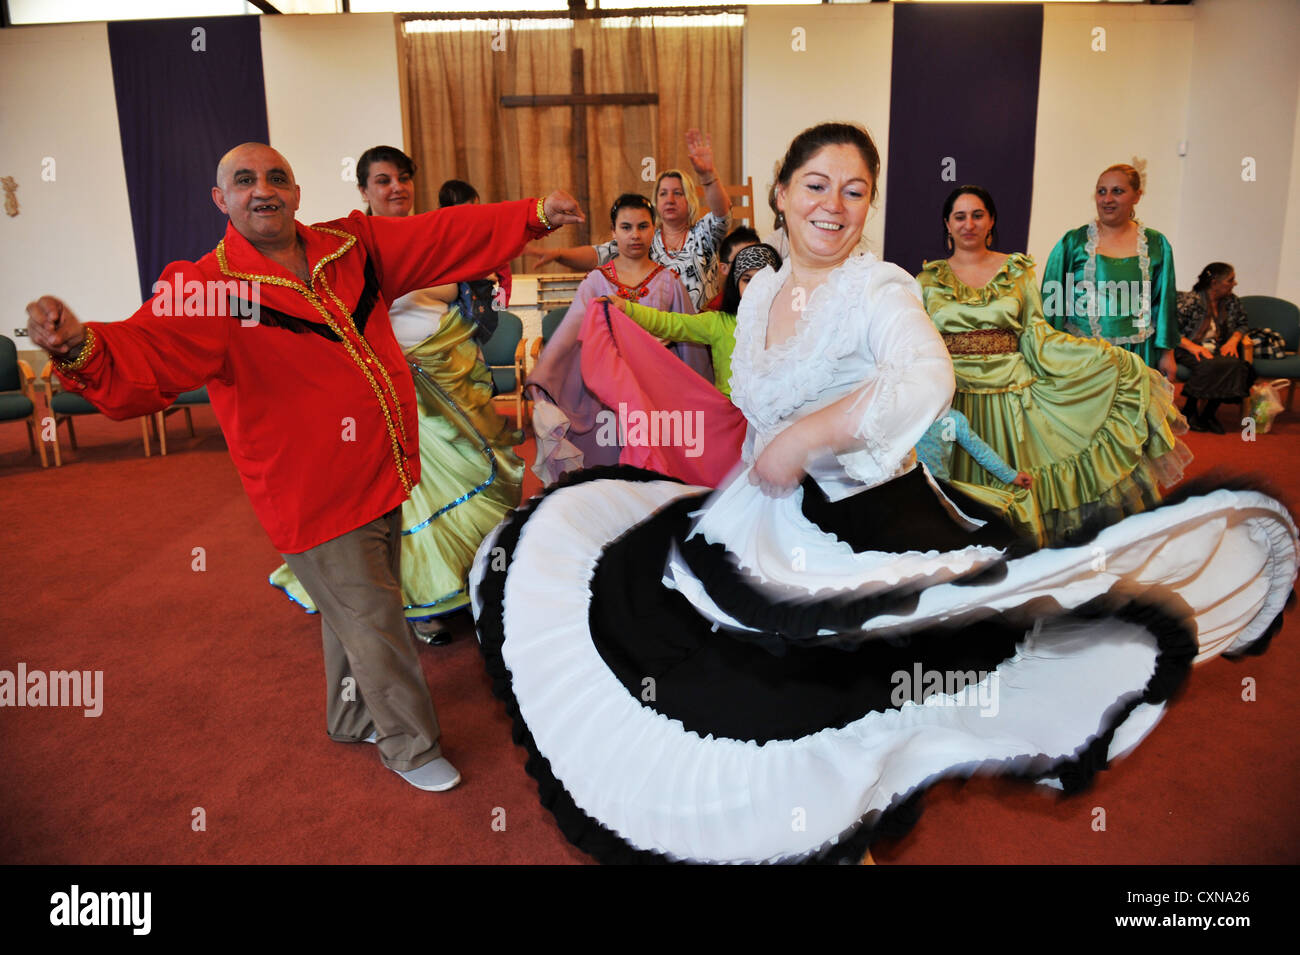 Roma Community dancing in traditional clothing now living in Bradford UK - Stock Image